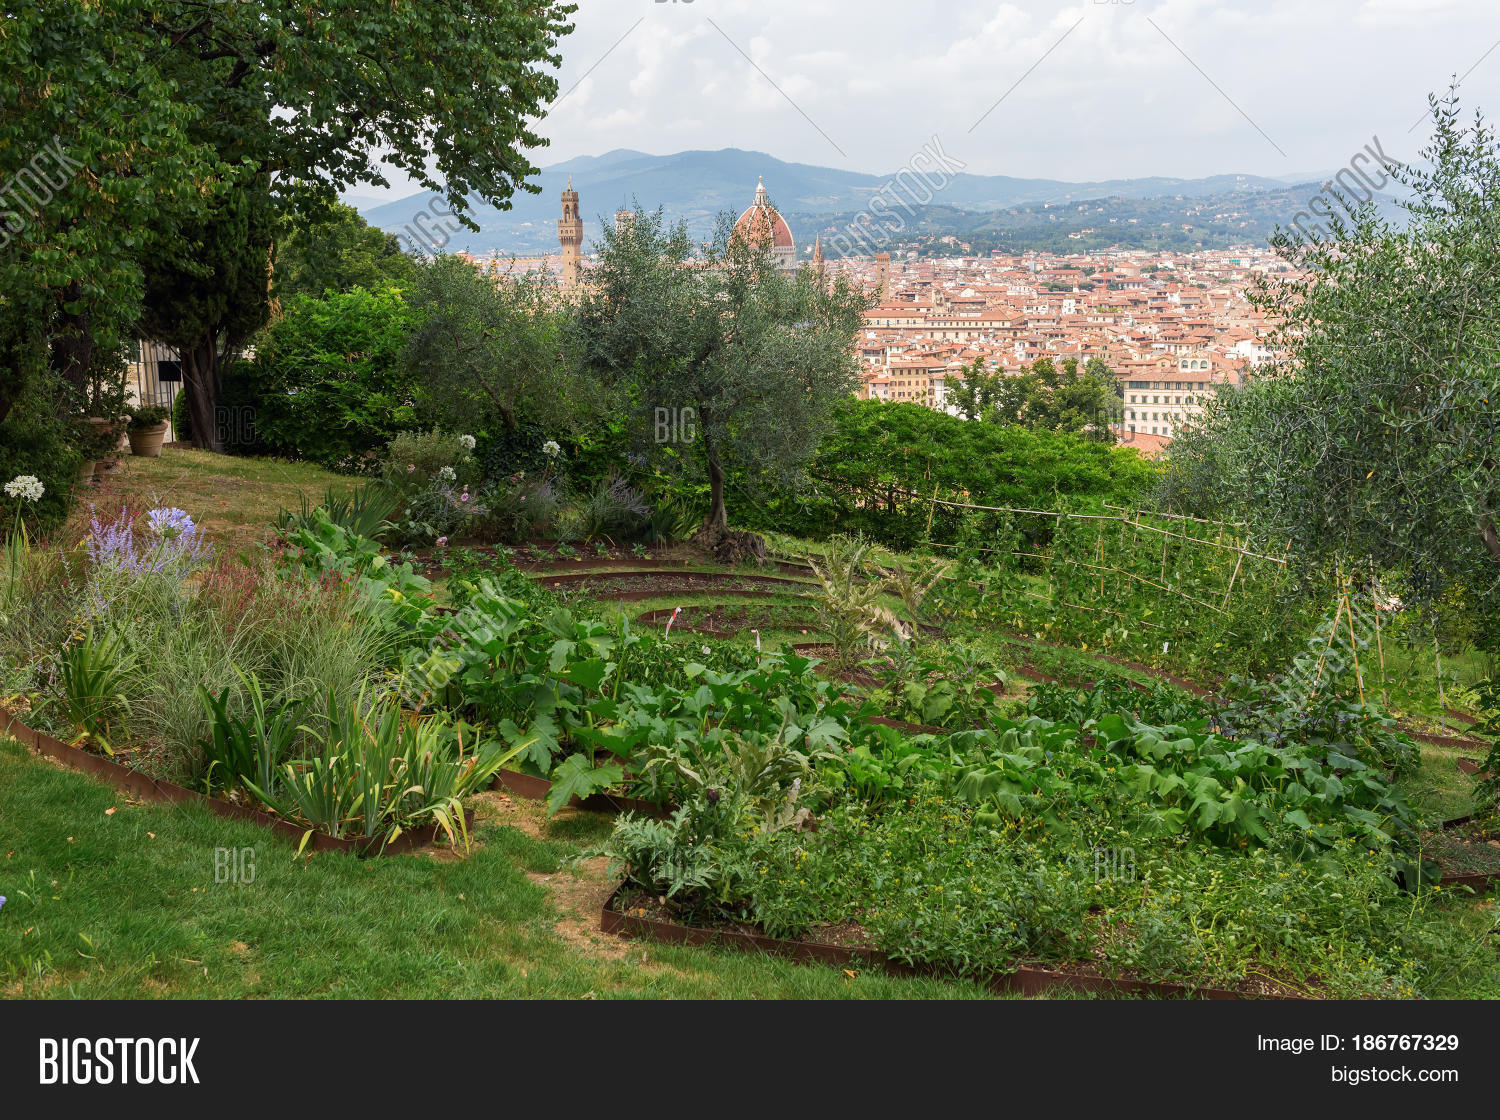 Giardino Bardini View Image Photo Free Trial Bigstock